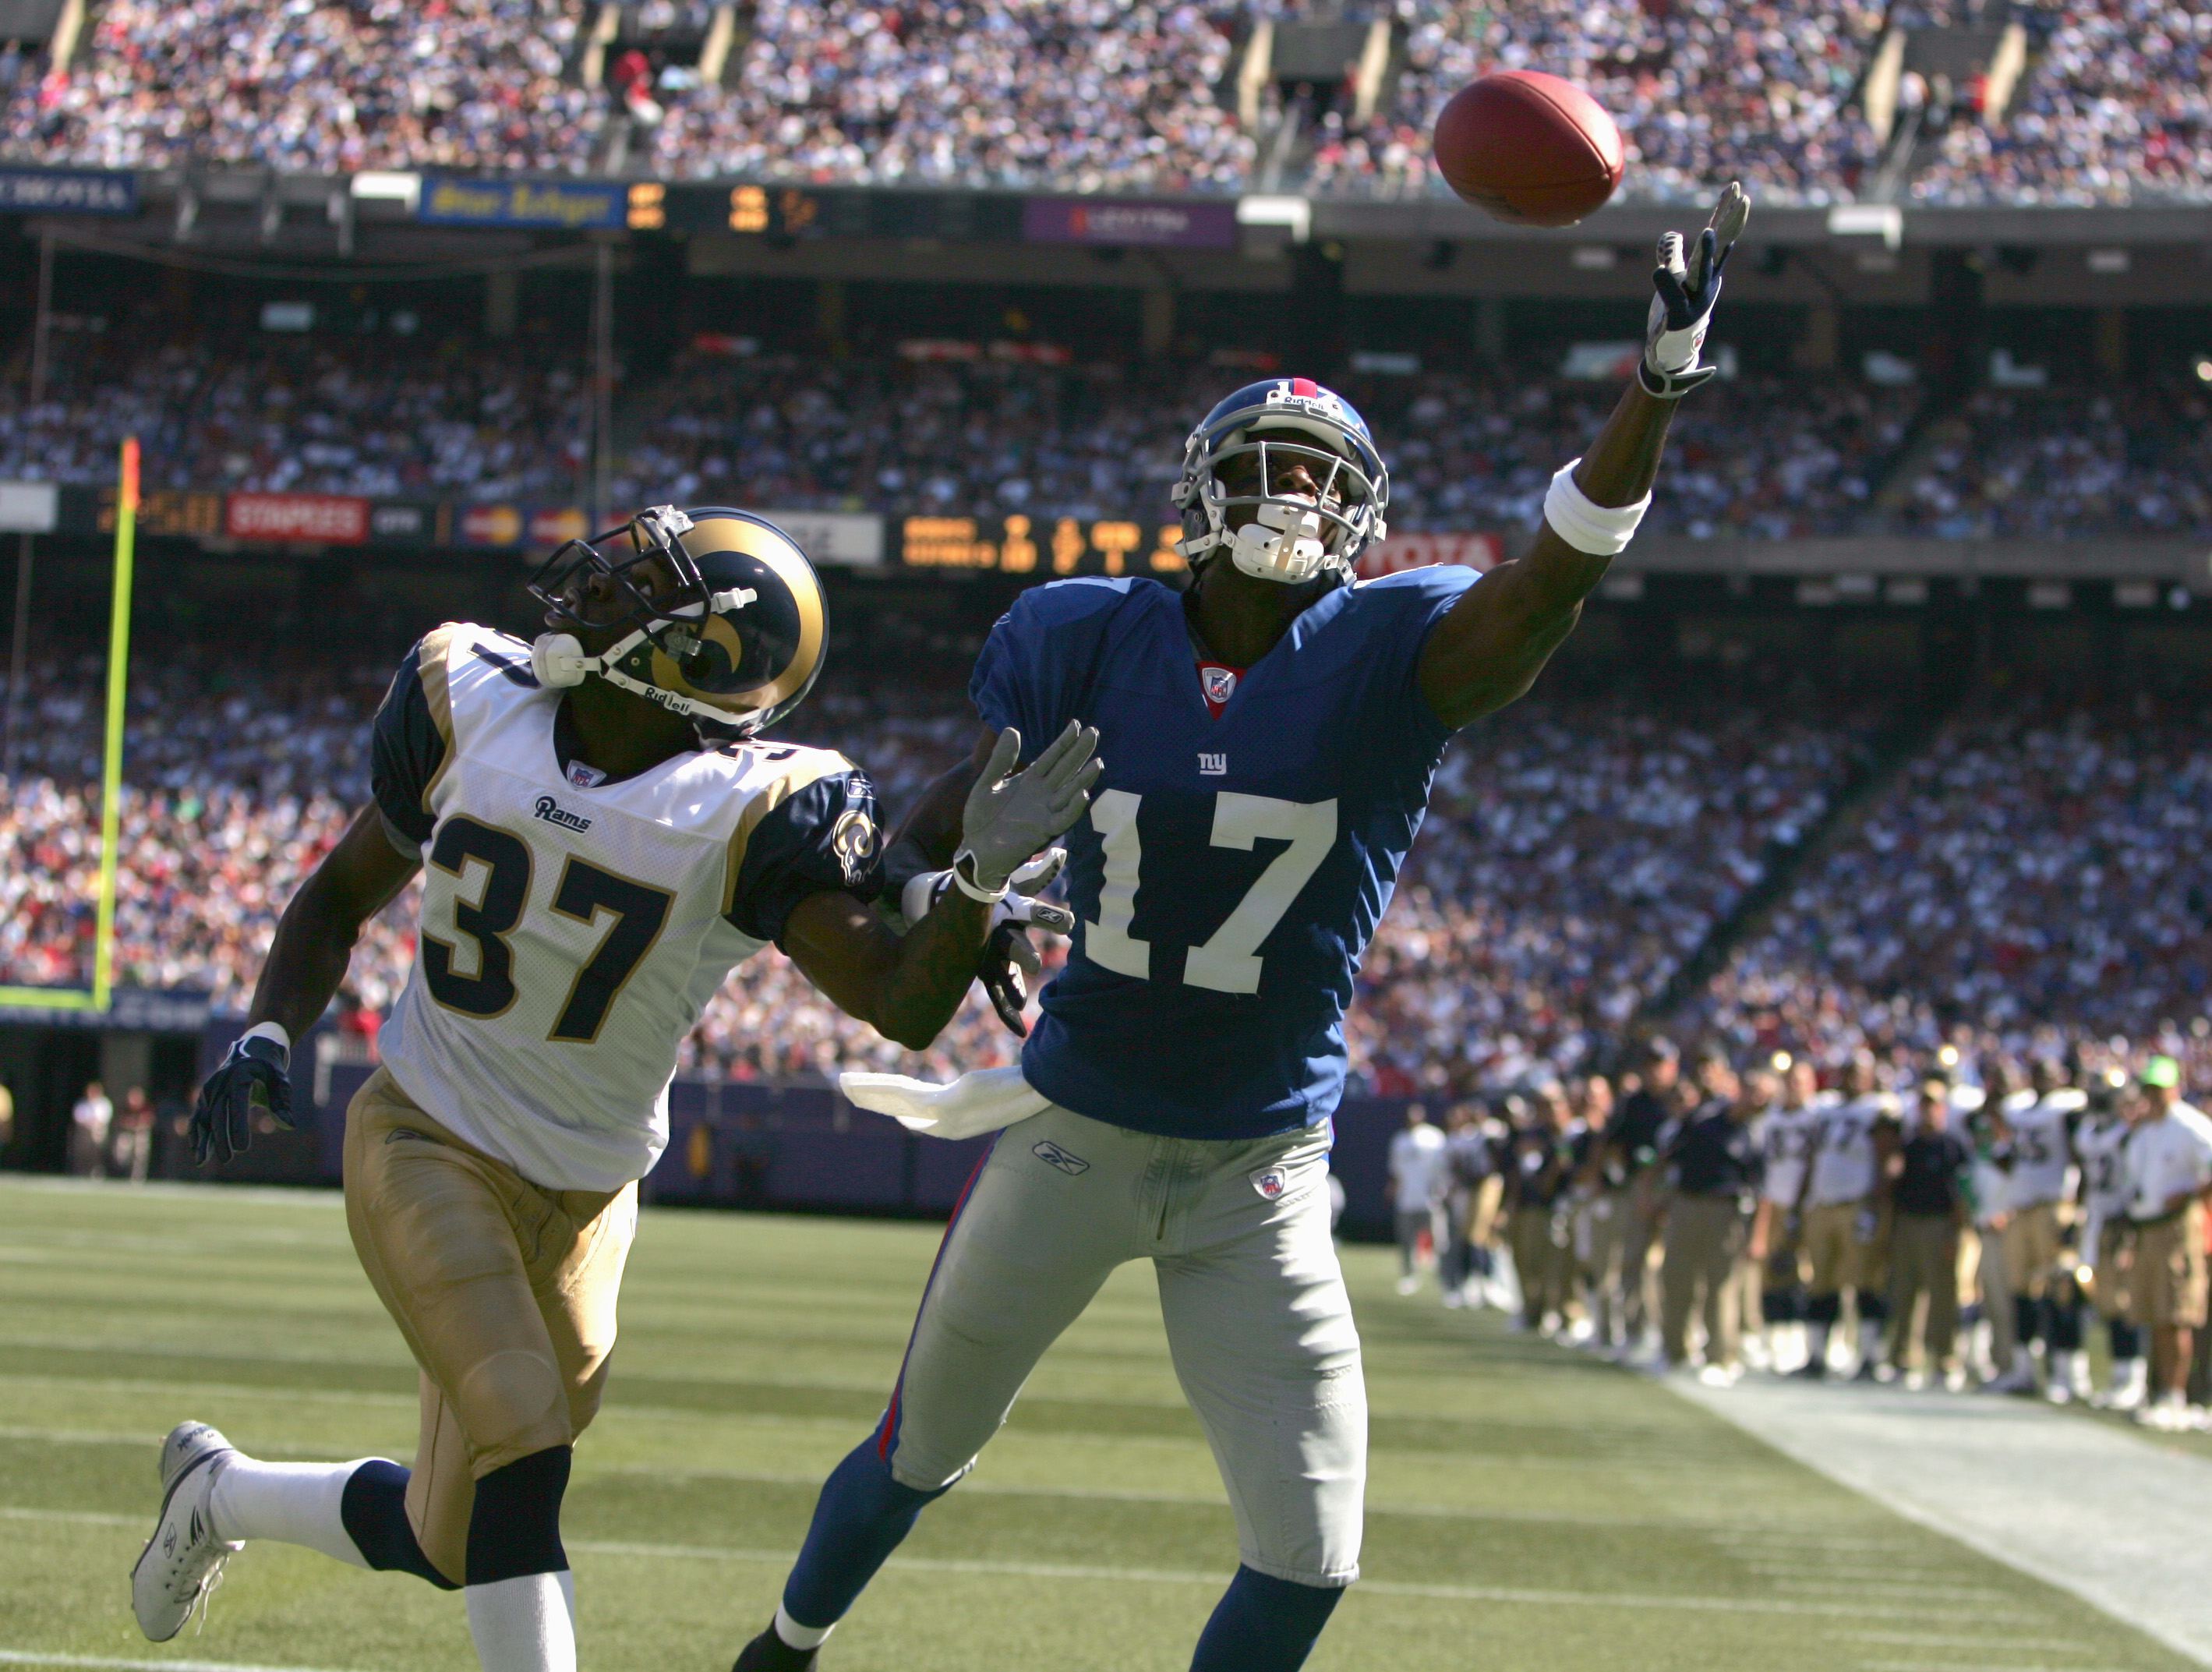 EAST RUTHERFORD, NJ - OCTOBER 02: Plaxico Burress #17 of the New York Giants reaches for the pass during the game against the St. Louis Rams on October 2, 2005 at Giants Stadium in East Rutherford, New Jersey. The Giants won 44-24. (Photo by Ezra Shaw/Get